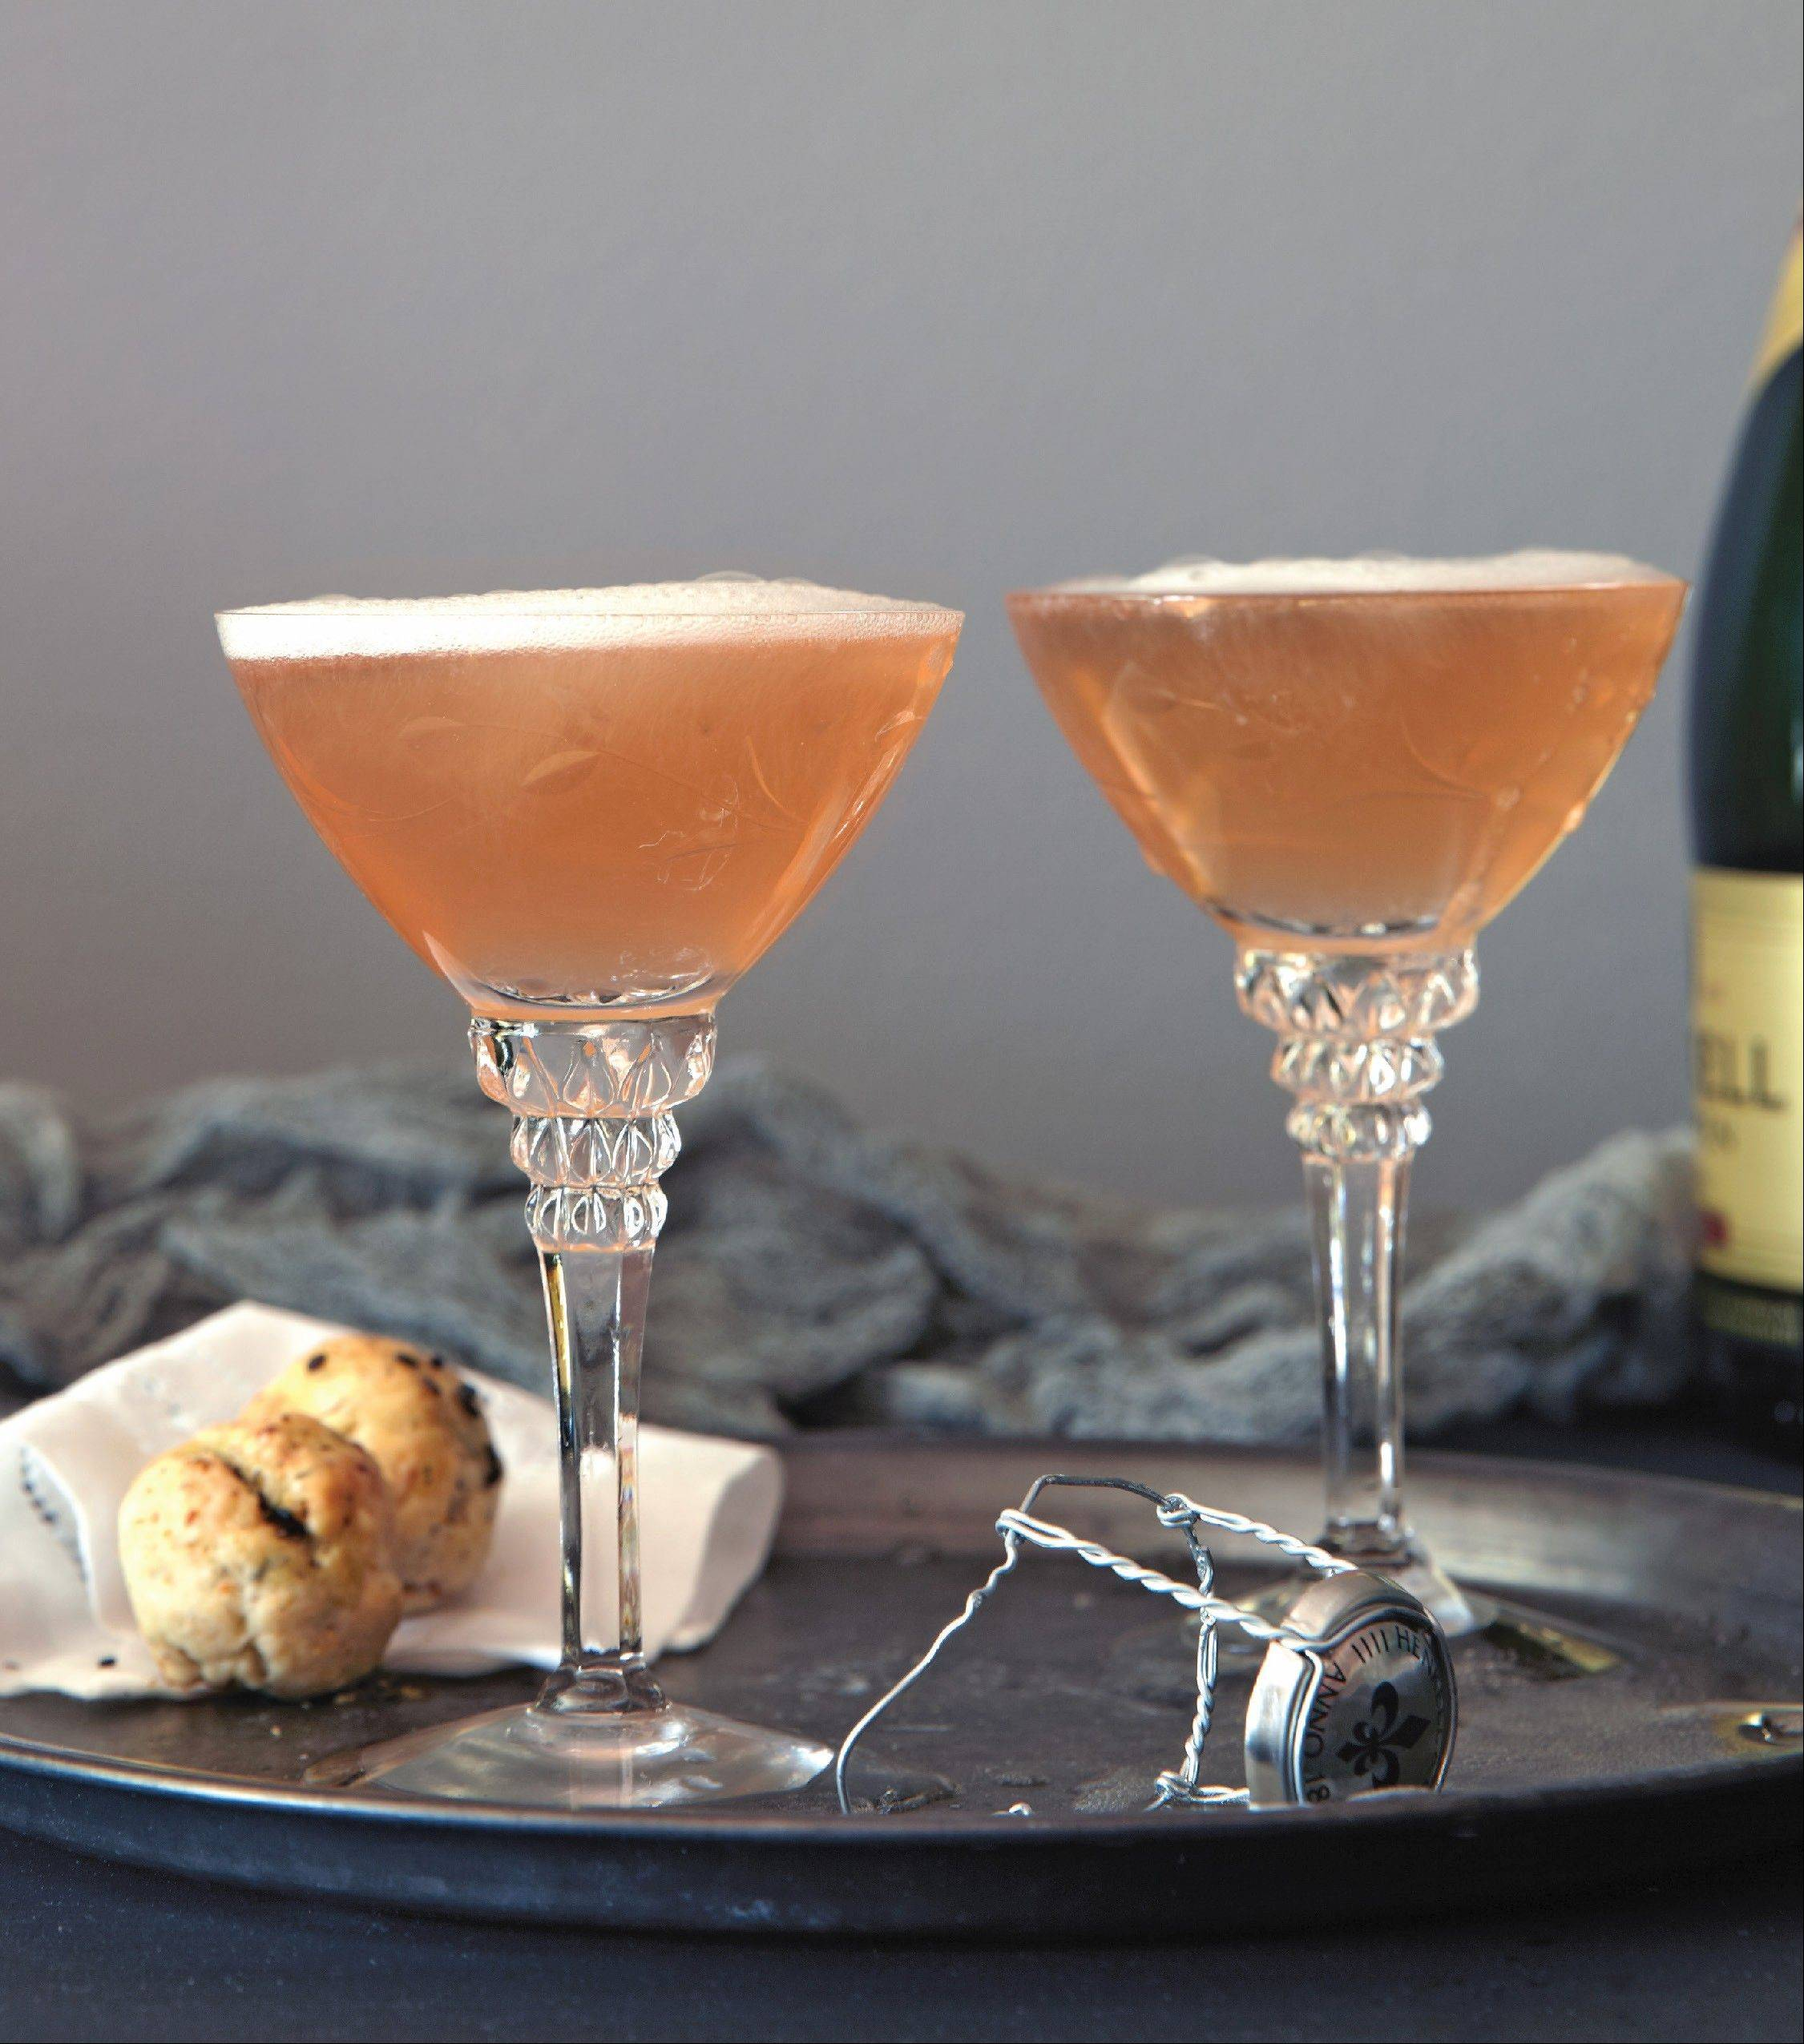 Bubbly and bourbon combine for one Bloody Good Punch. �Winter Cocktails� author Maria Del Mar Sacasa suggests using a less expensive sparkler, like cava or prosecco.